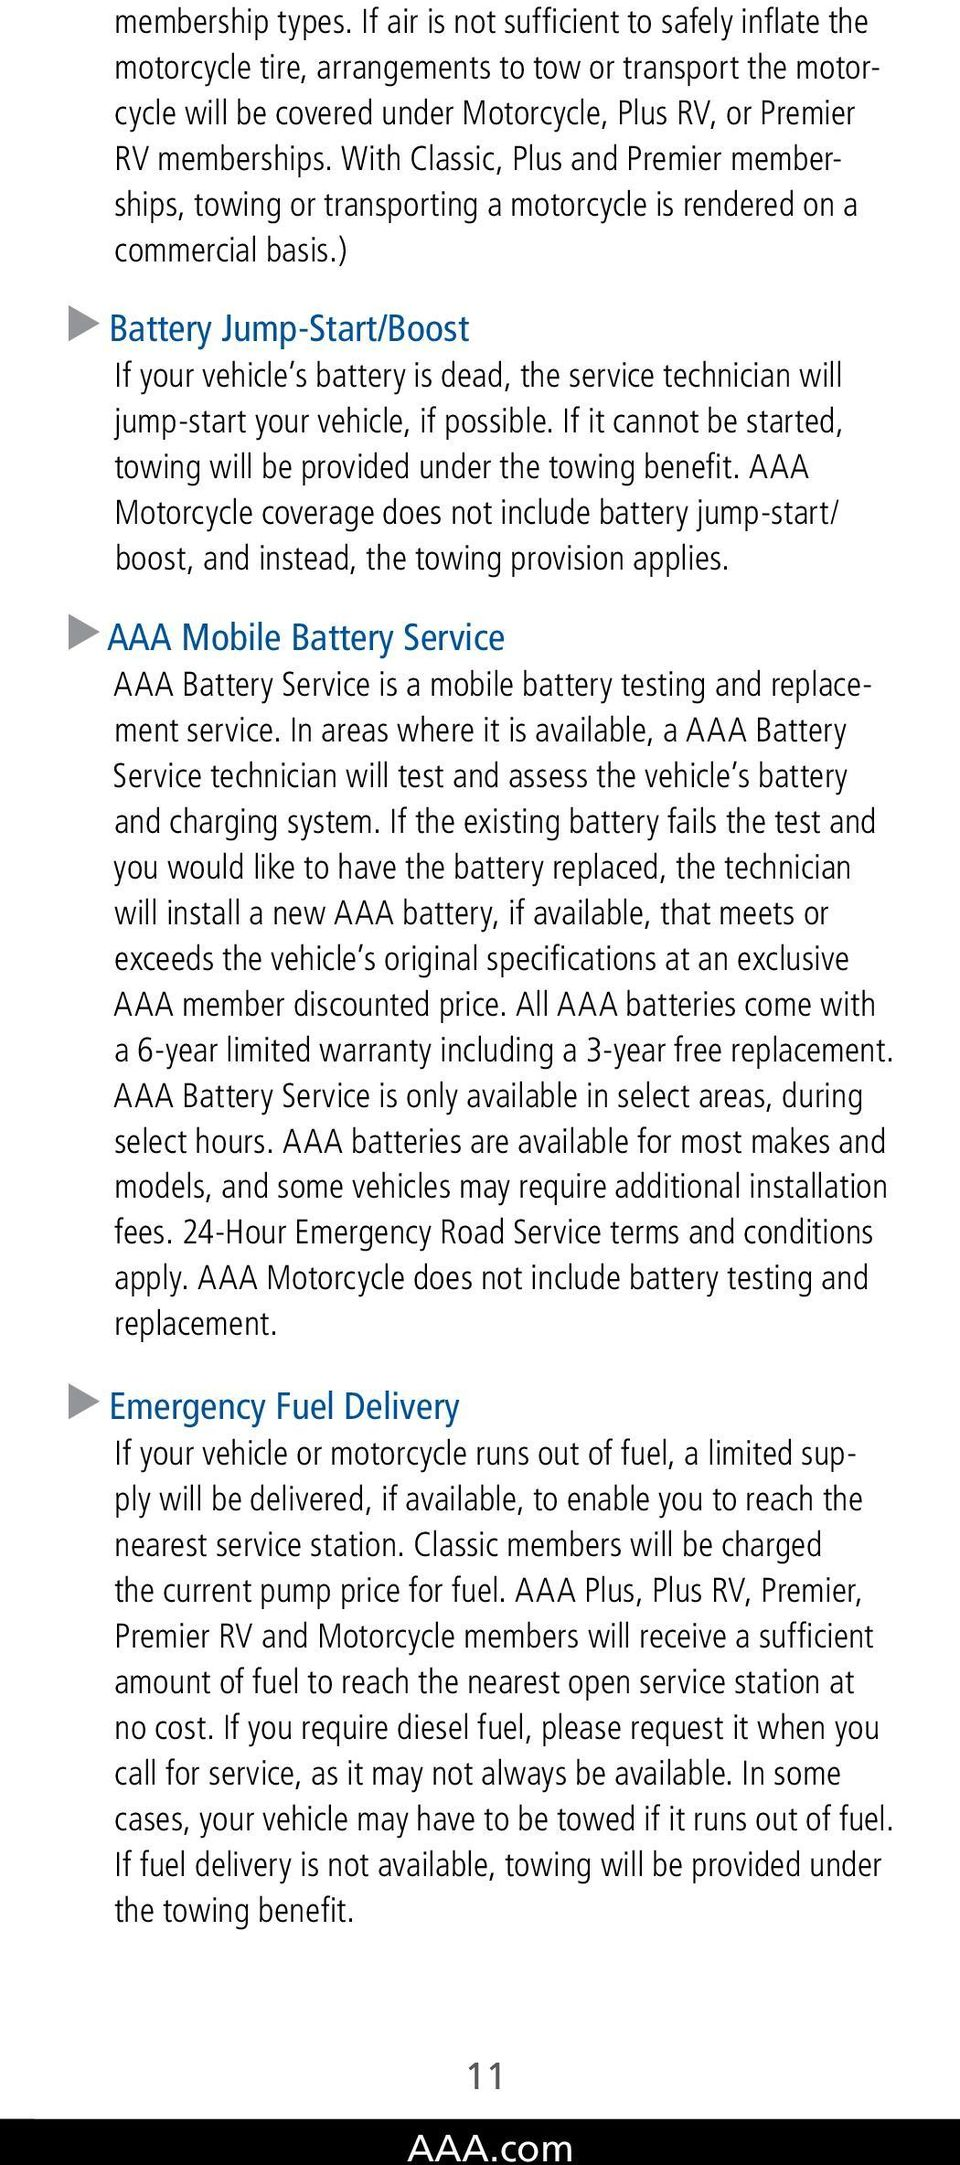 ) Battery Jump-Start/Boost If your vehicle s battery is dead, the service technician will jump-start your vehicle, if possible.